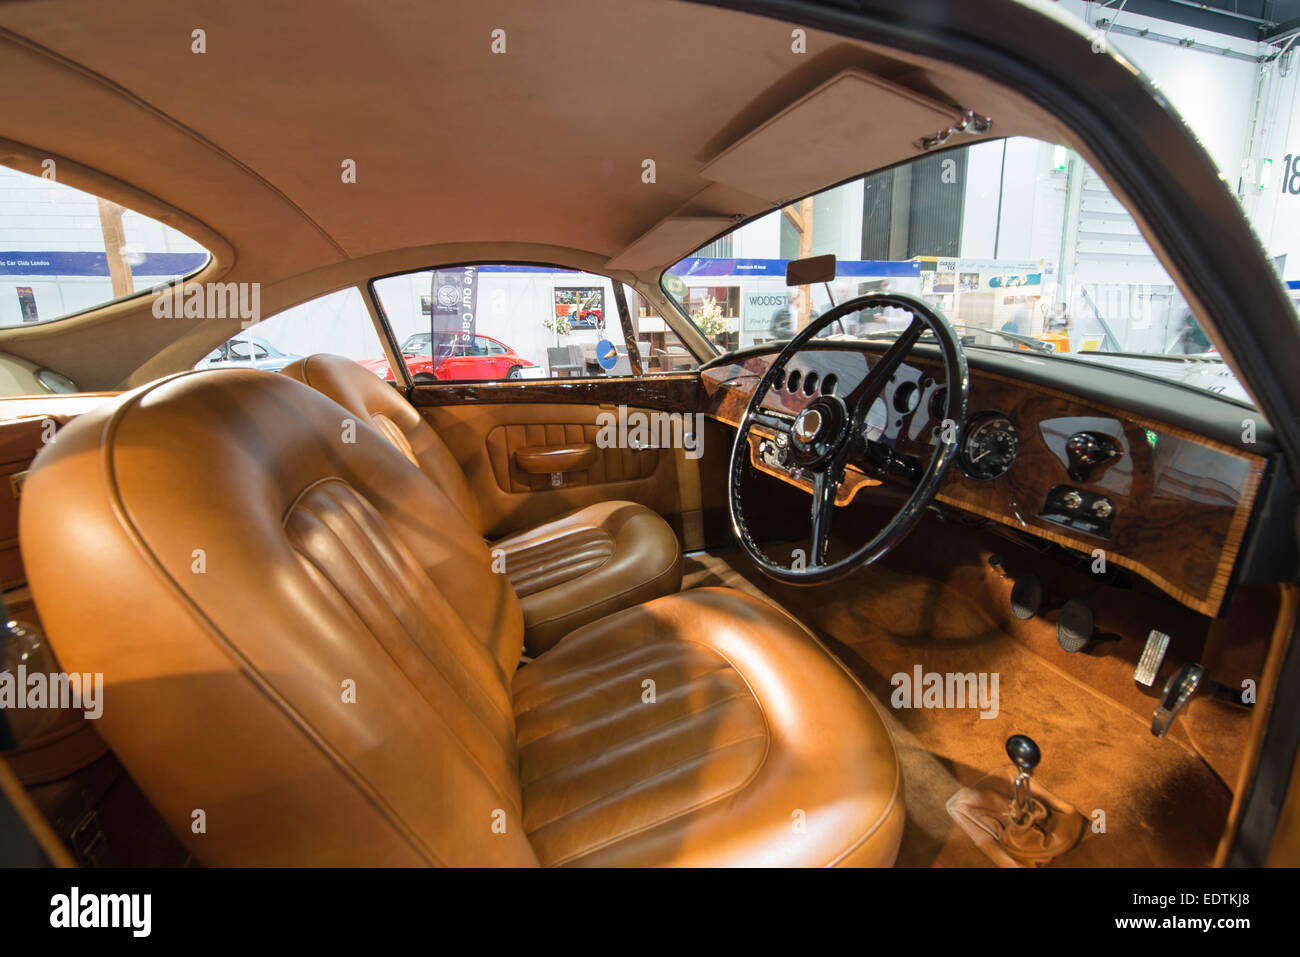 Interior, The Classic Car Show at London Excel, a limited production run Bentley La Sarthe 1953 R Type Fastback - Stock Image